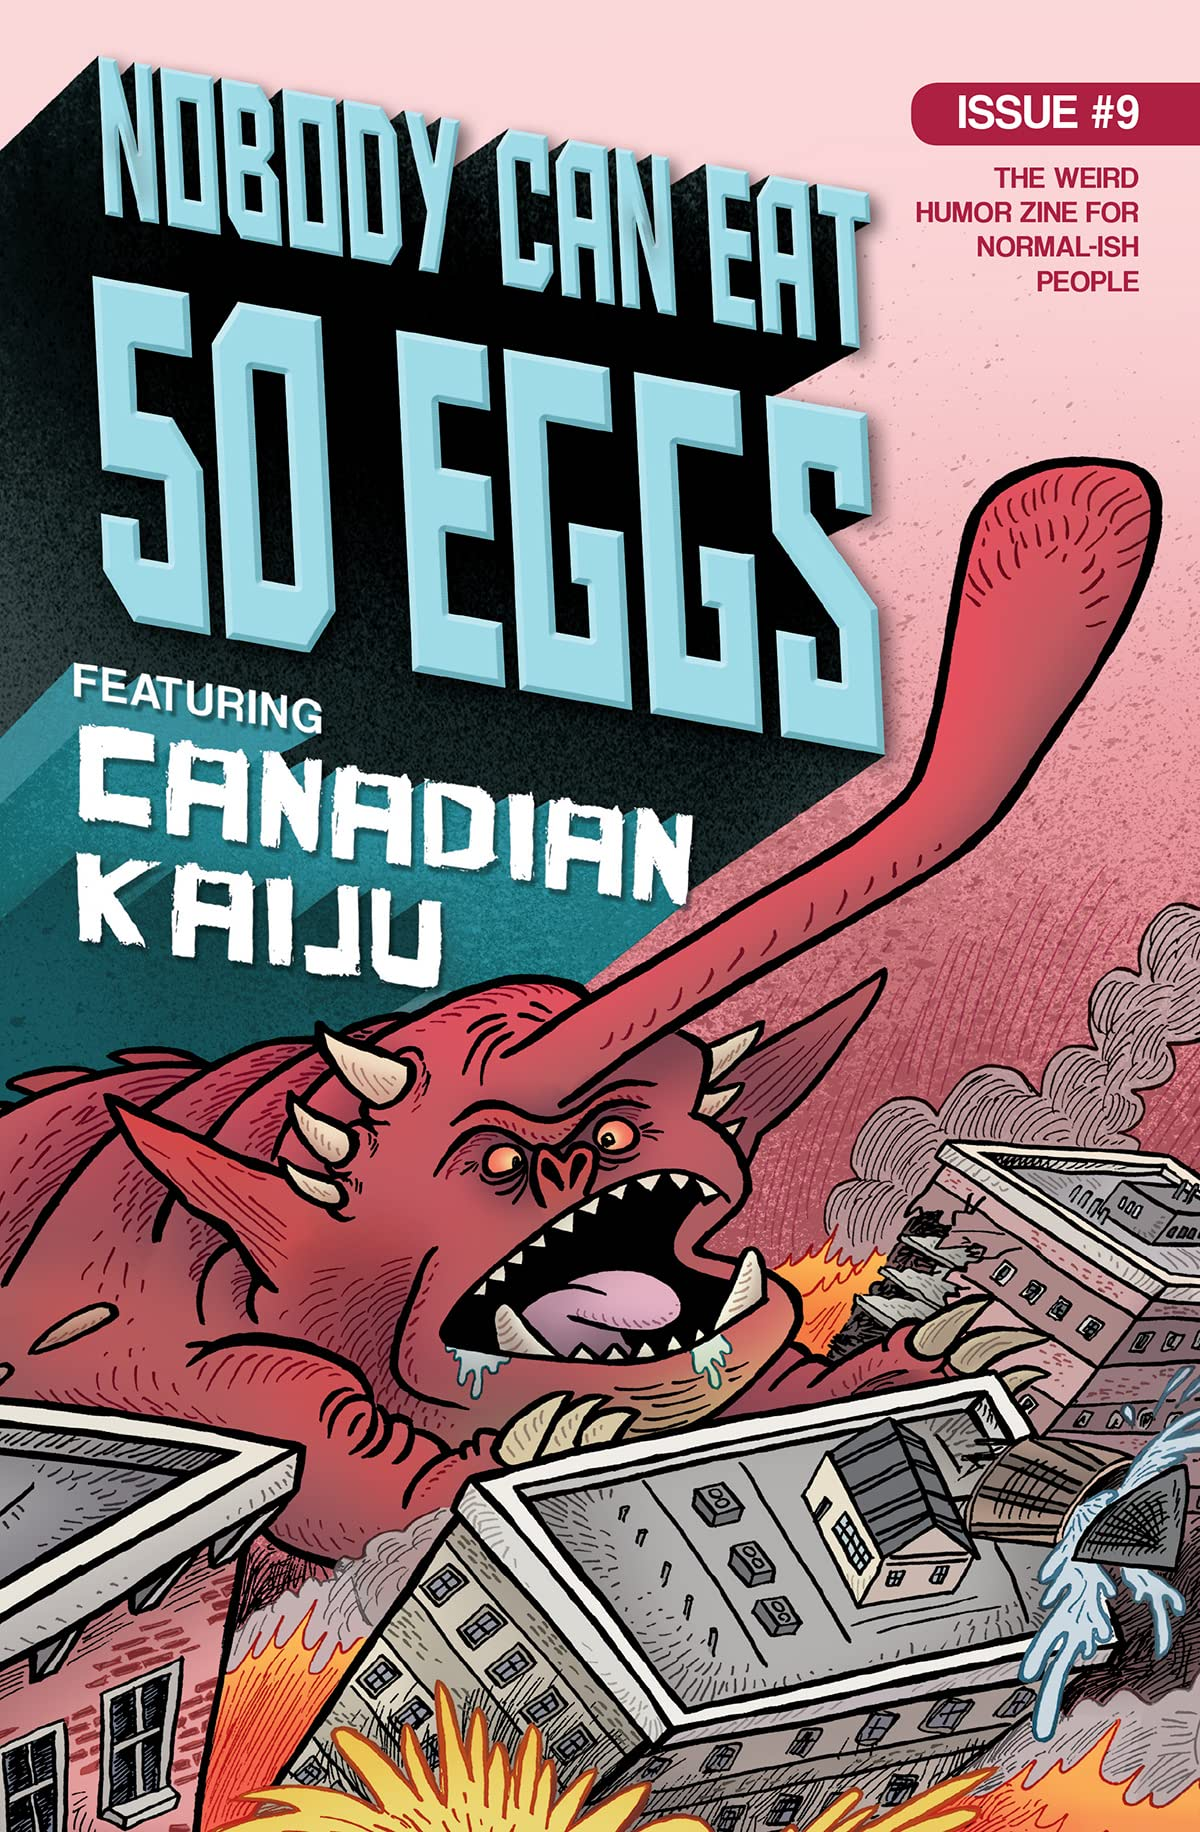 Nobody Can Eat 50 Eggs #9